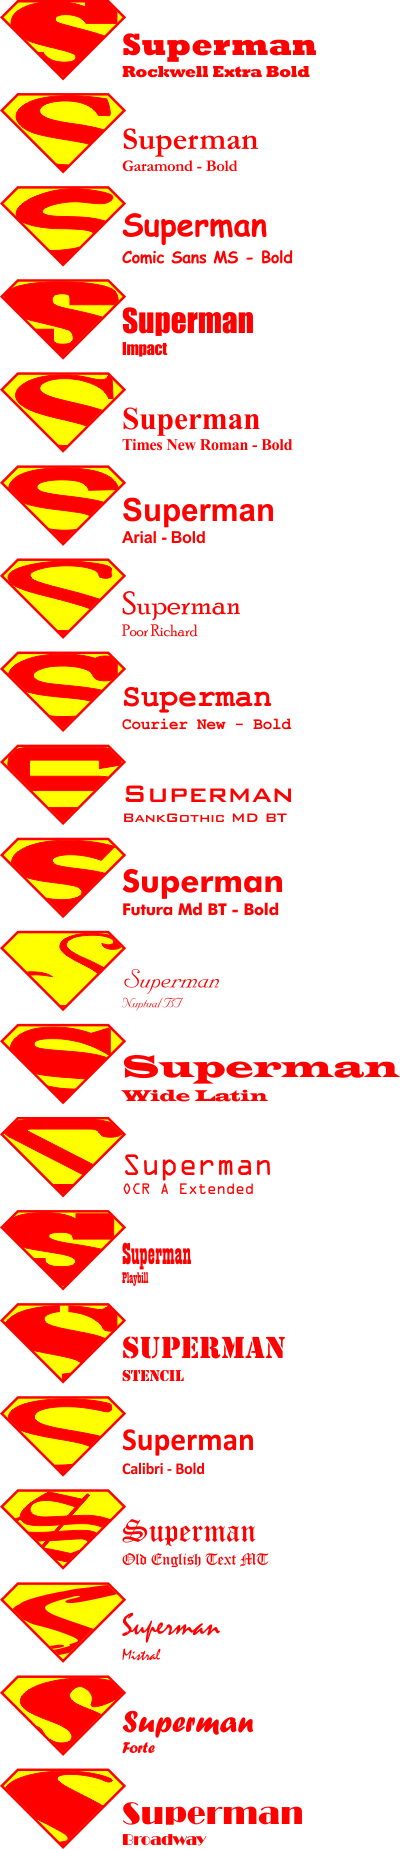 Superman logo in 20 fonts dmagy published by dmagy voltagebd Image collections